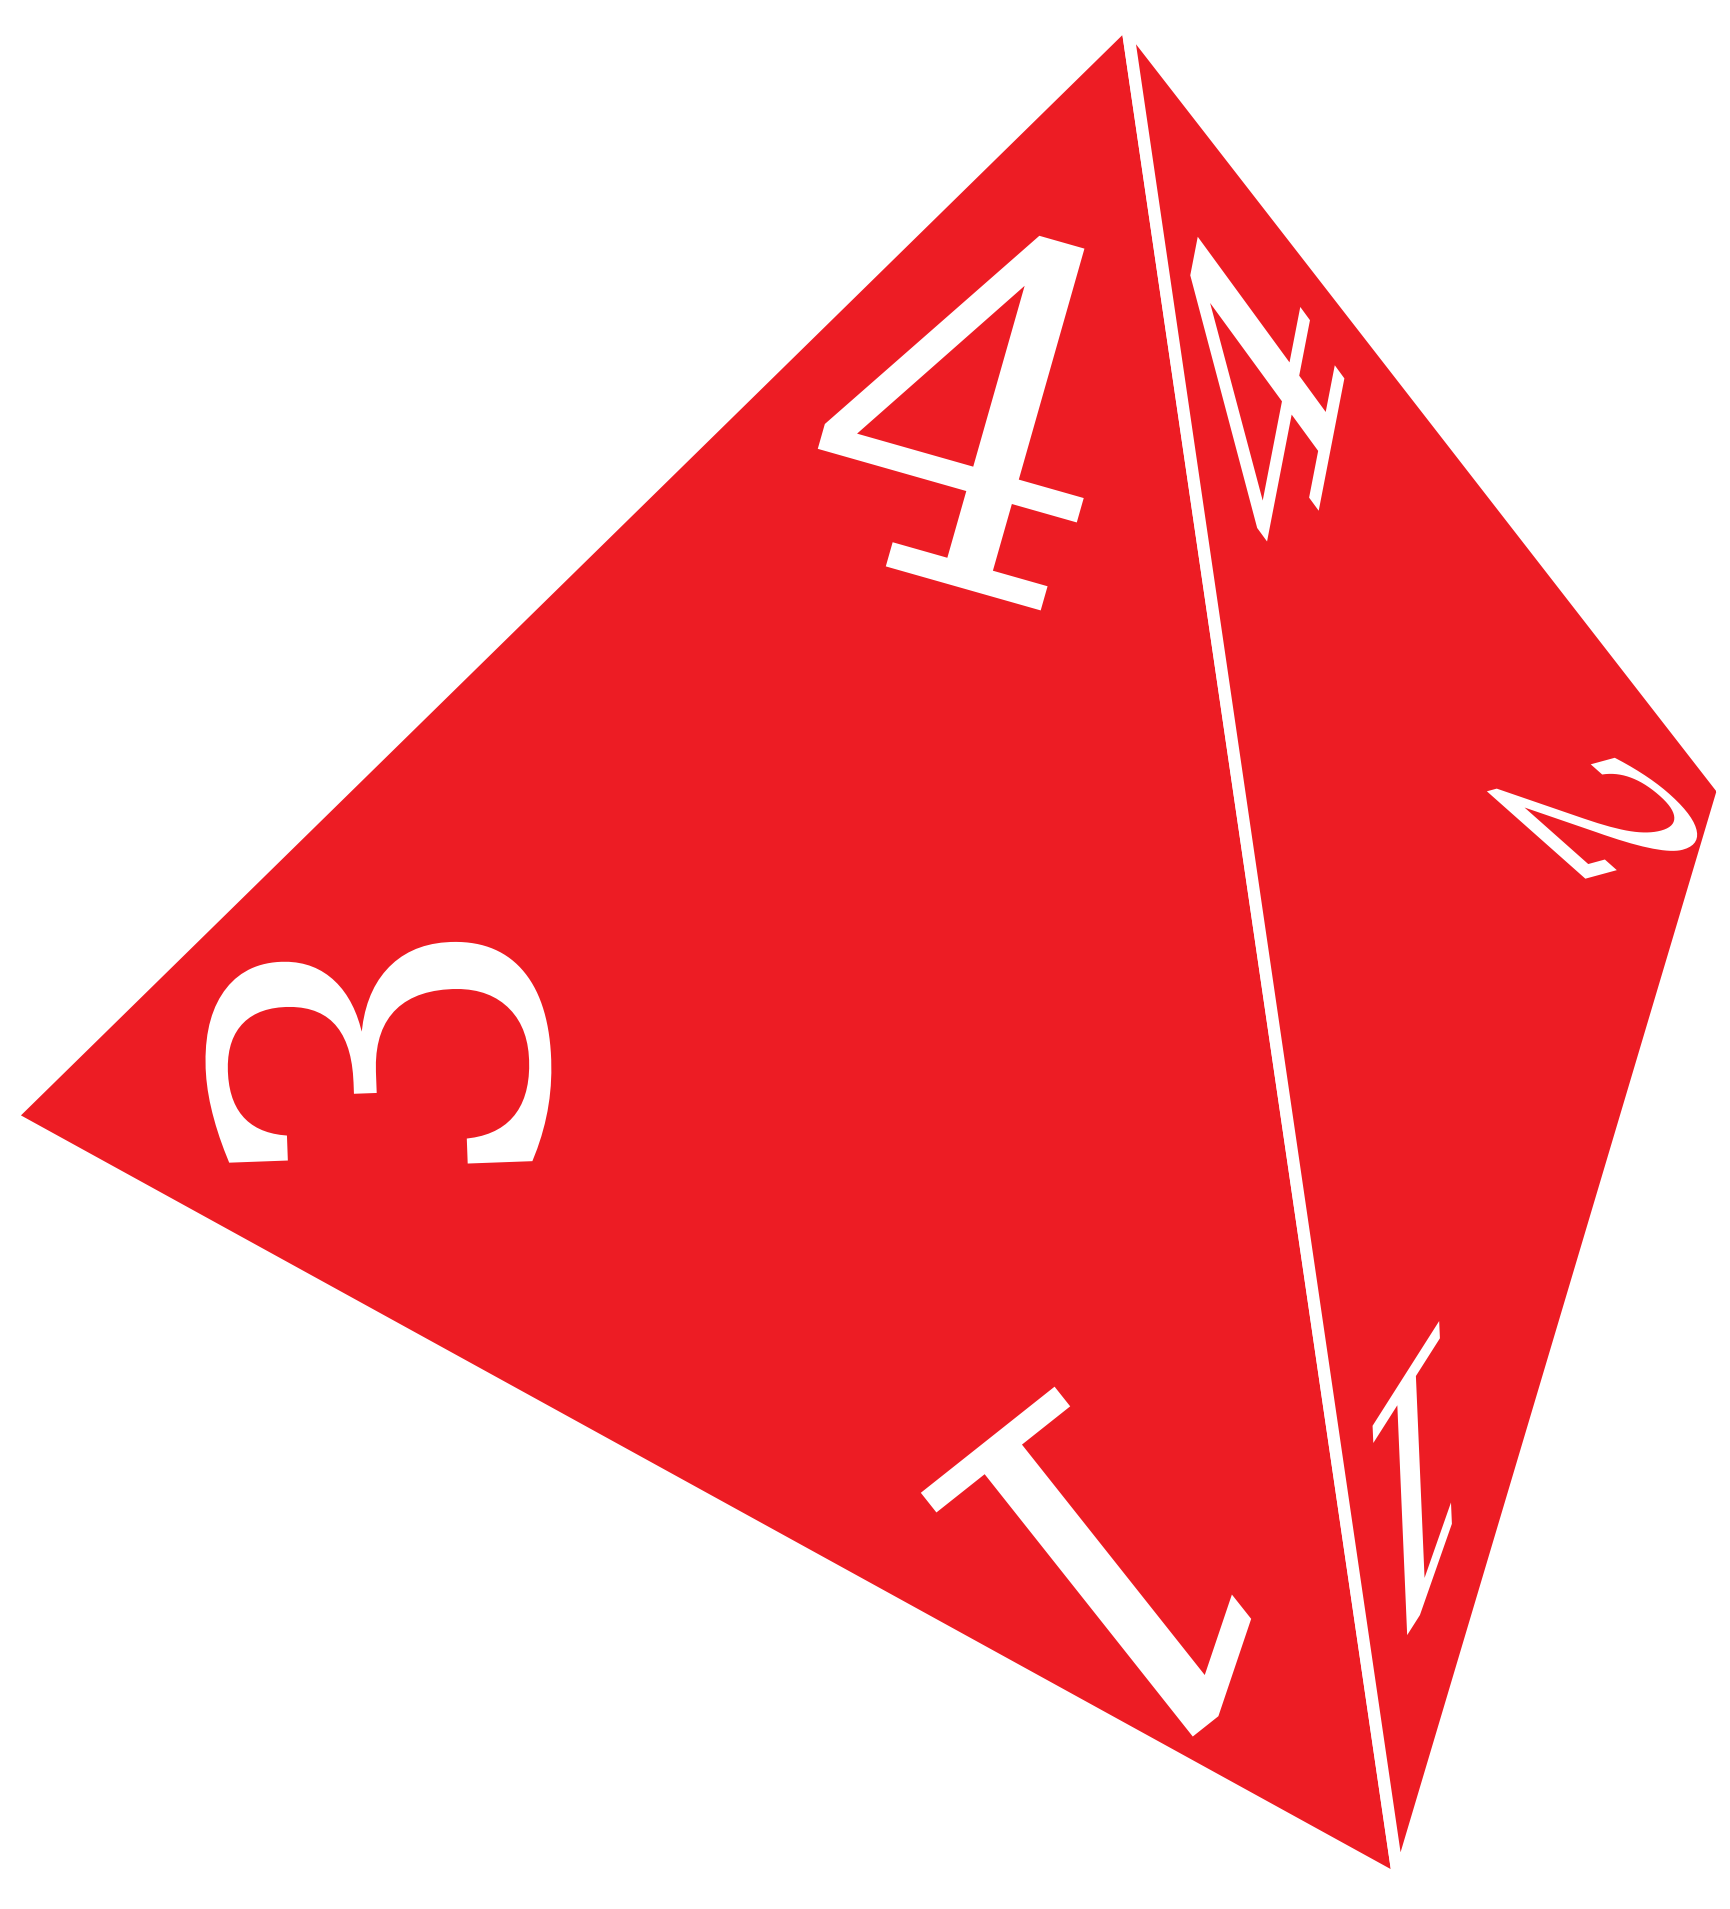 D4, Four Sided Die by Vachenzo